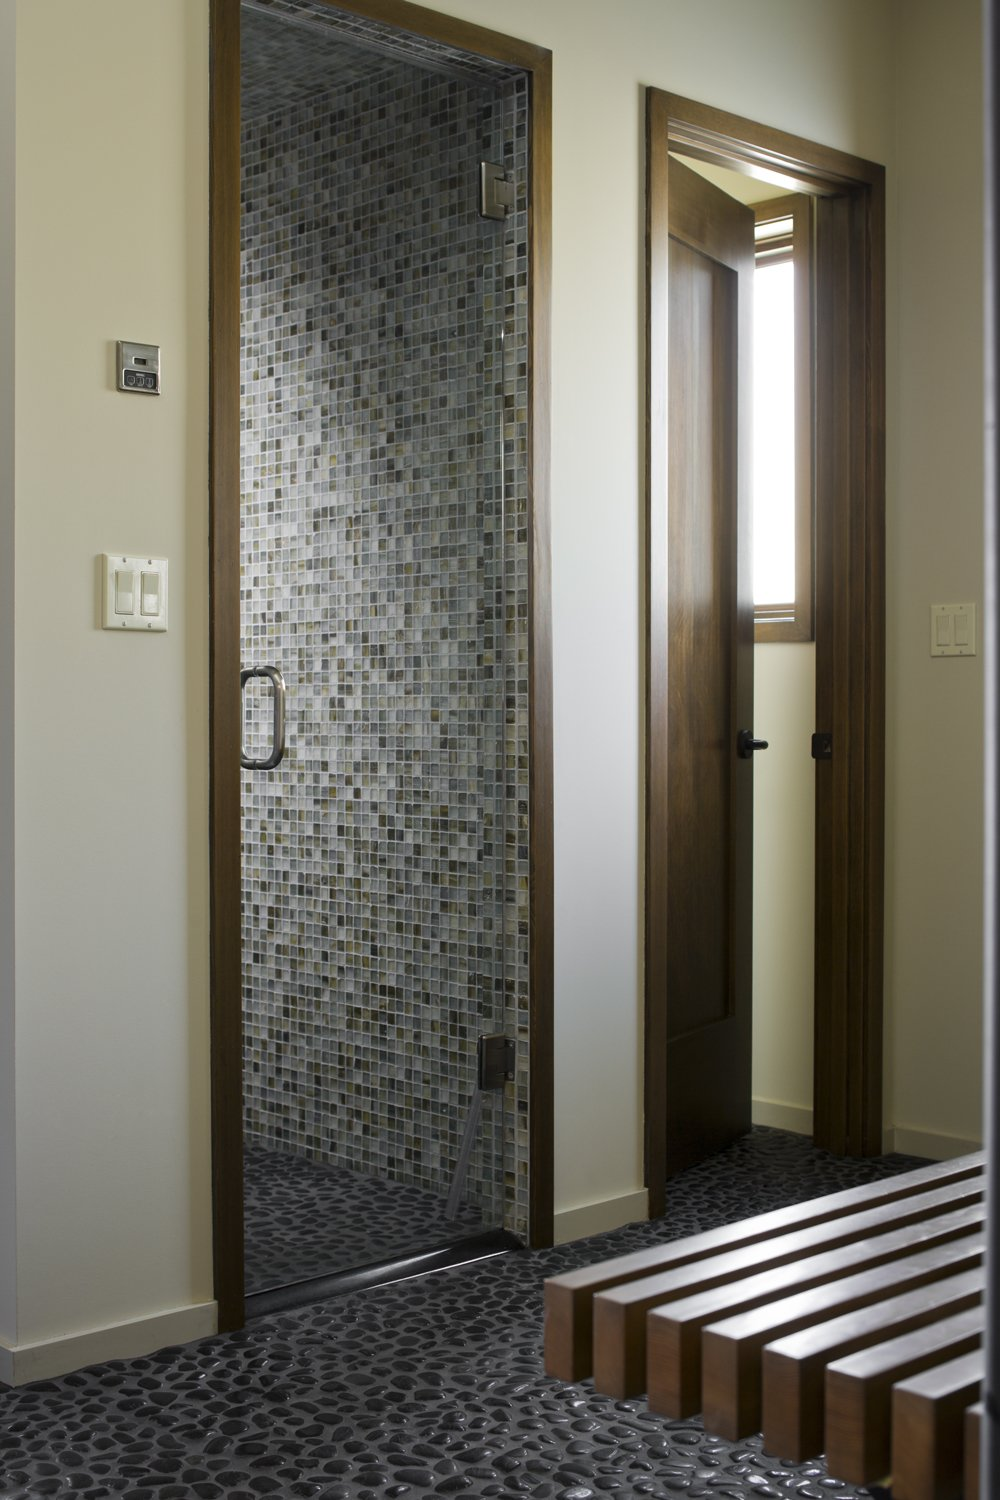 Bath Room, Enclosed Shower, and Mosaic Tile Wall Mountain View Residence  Mountain View Residence by SkB Architects